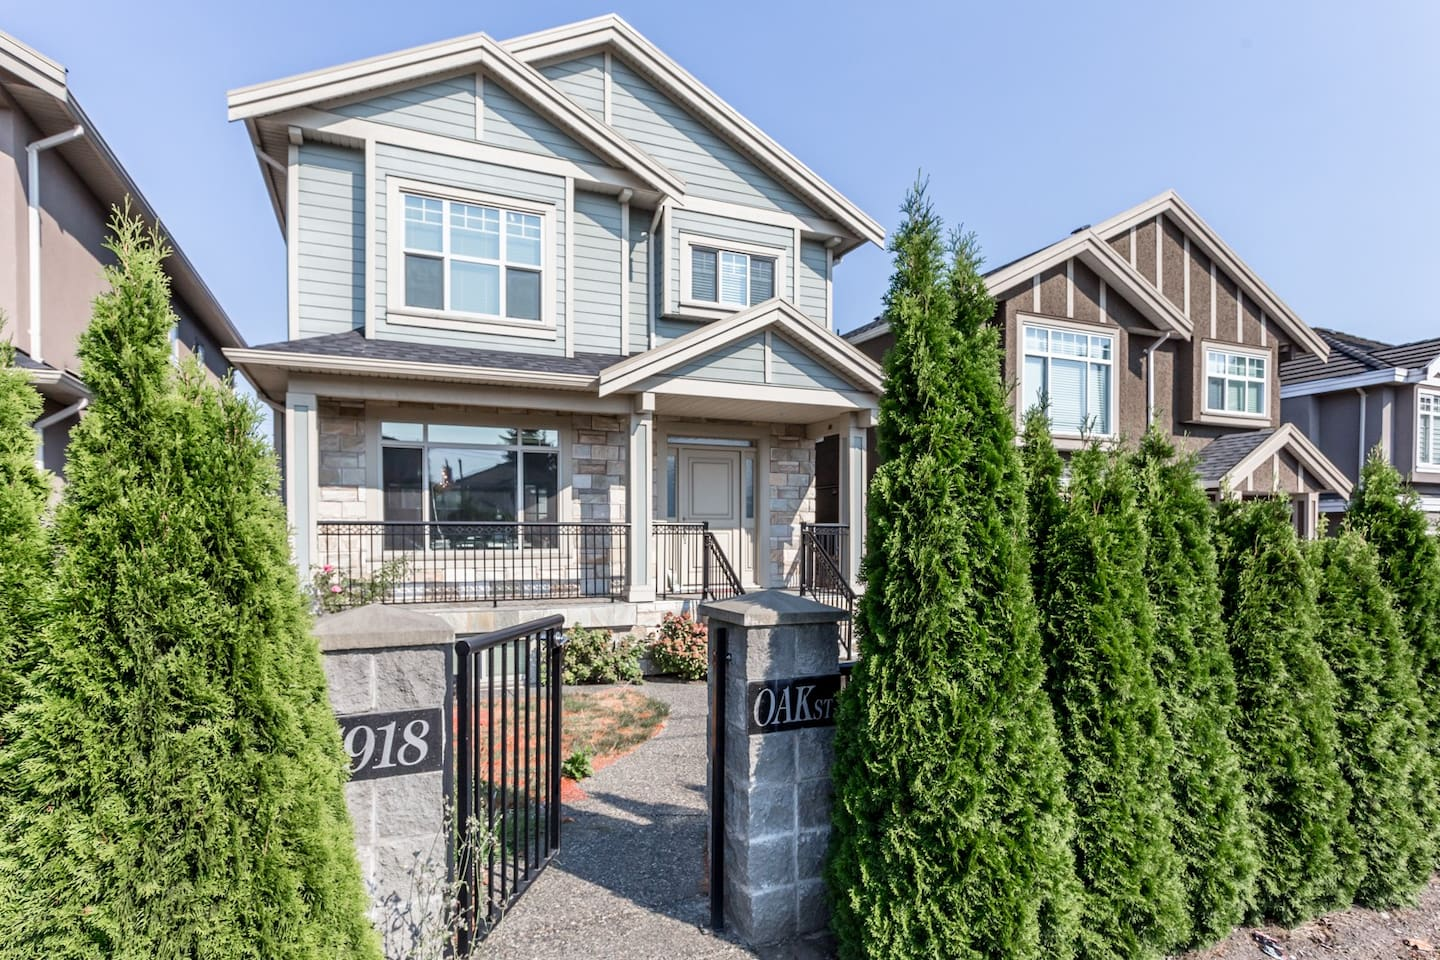 6yr new house in Marpole of Vancouver West 25min bus to Downtown 7km to airport YVR